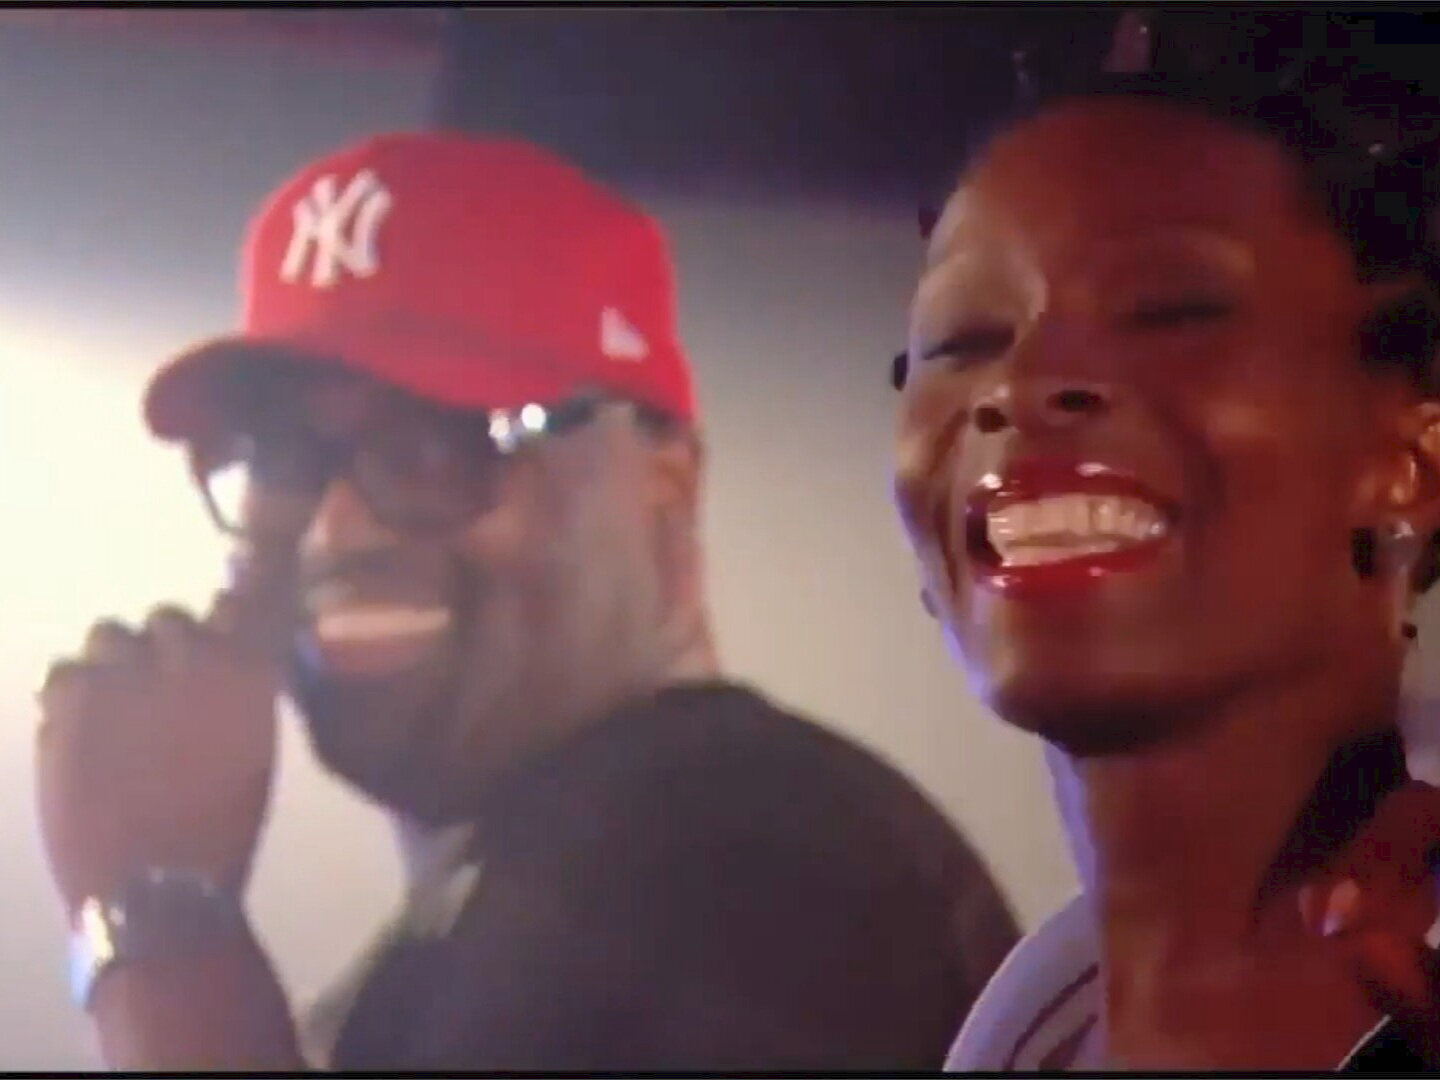 Frankie Knuckles and Alison Limerick